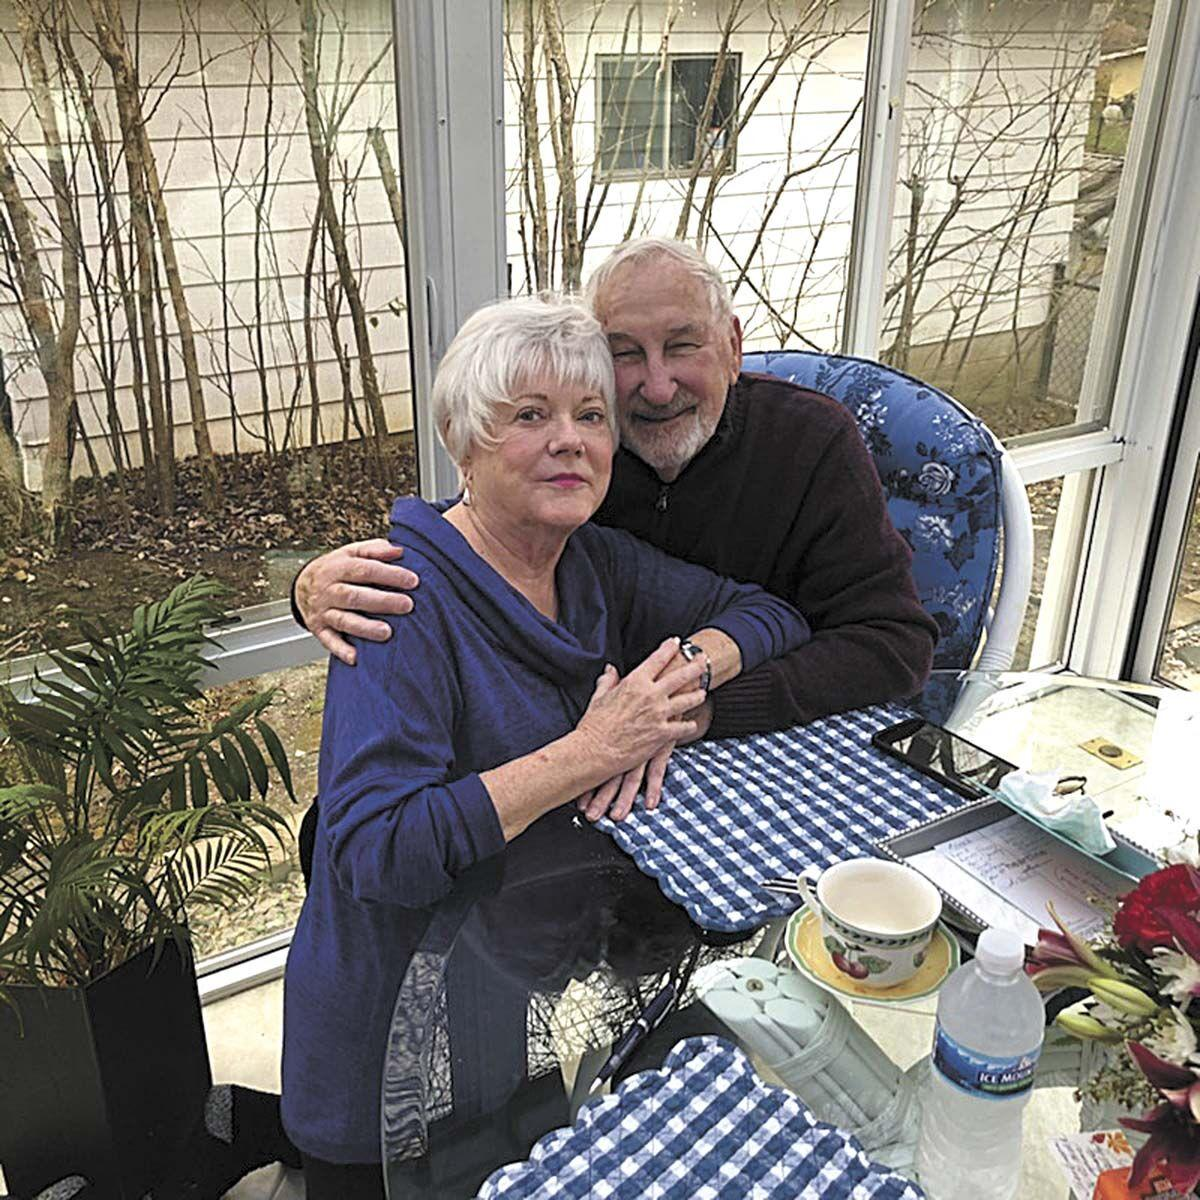 High school friends find love on meeting app after 62 years apart